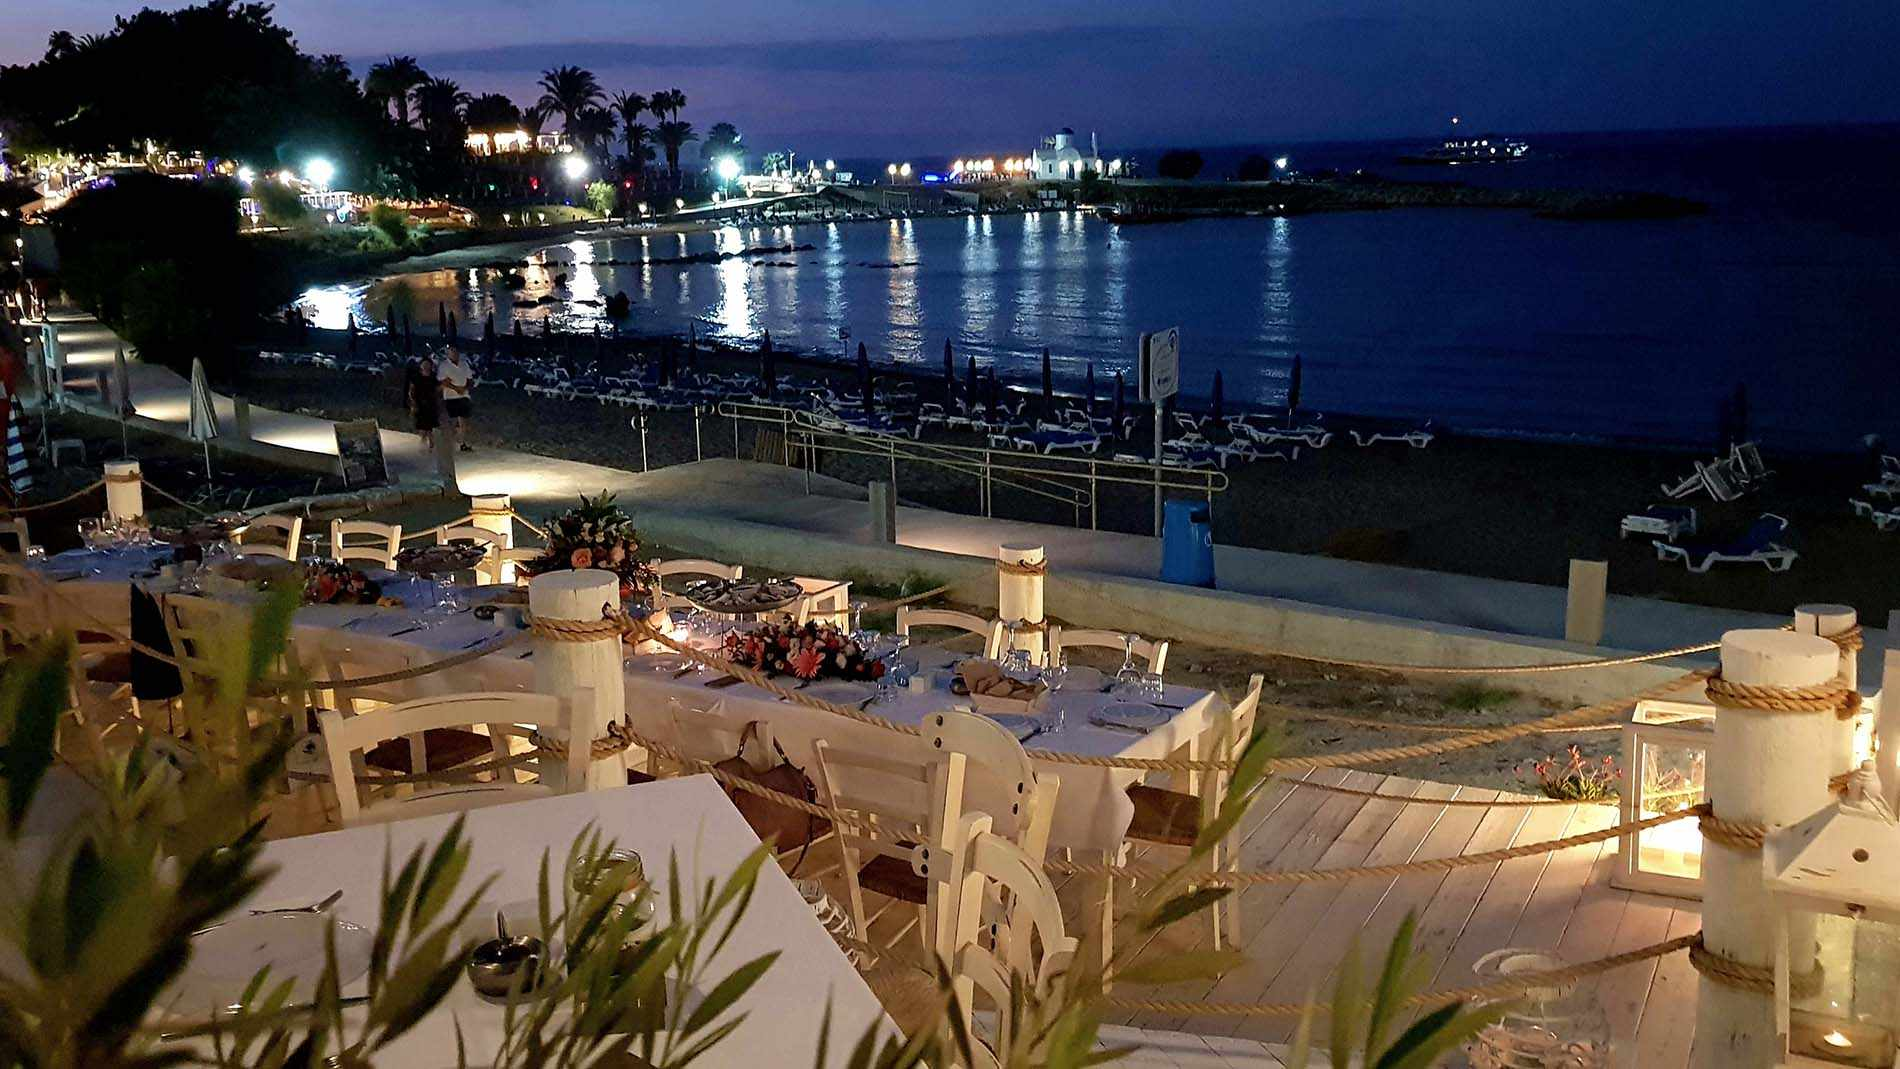 Interview with the owner and manager of Kalamies Restaurant in Protaras